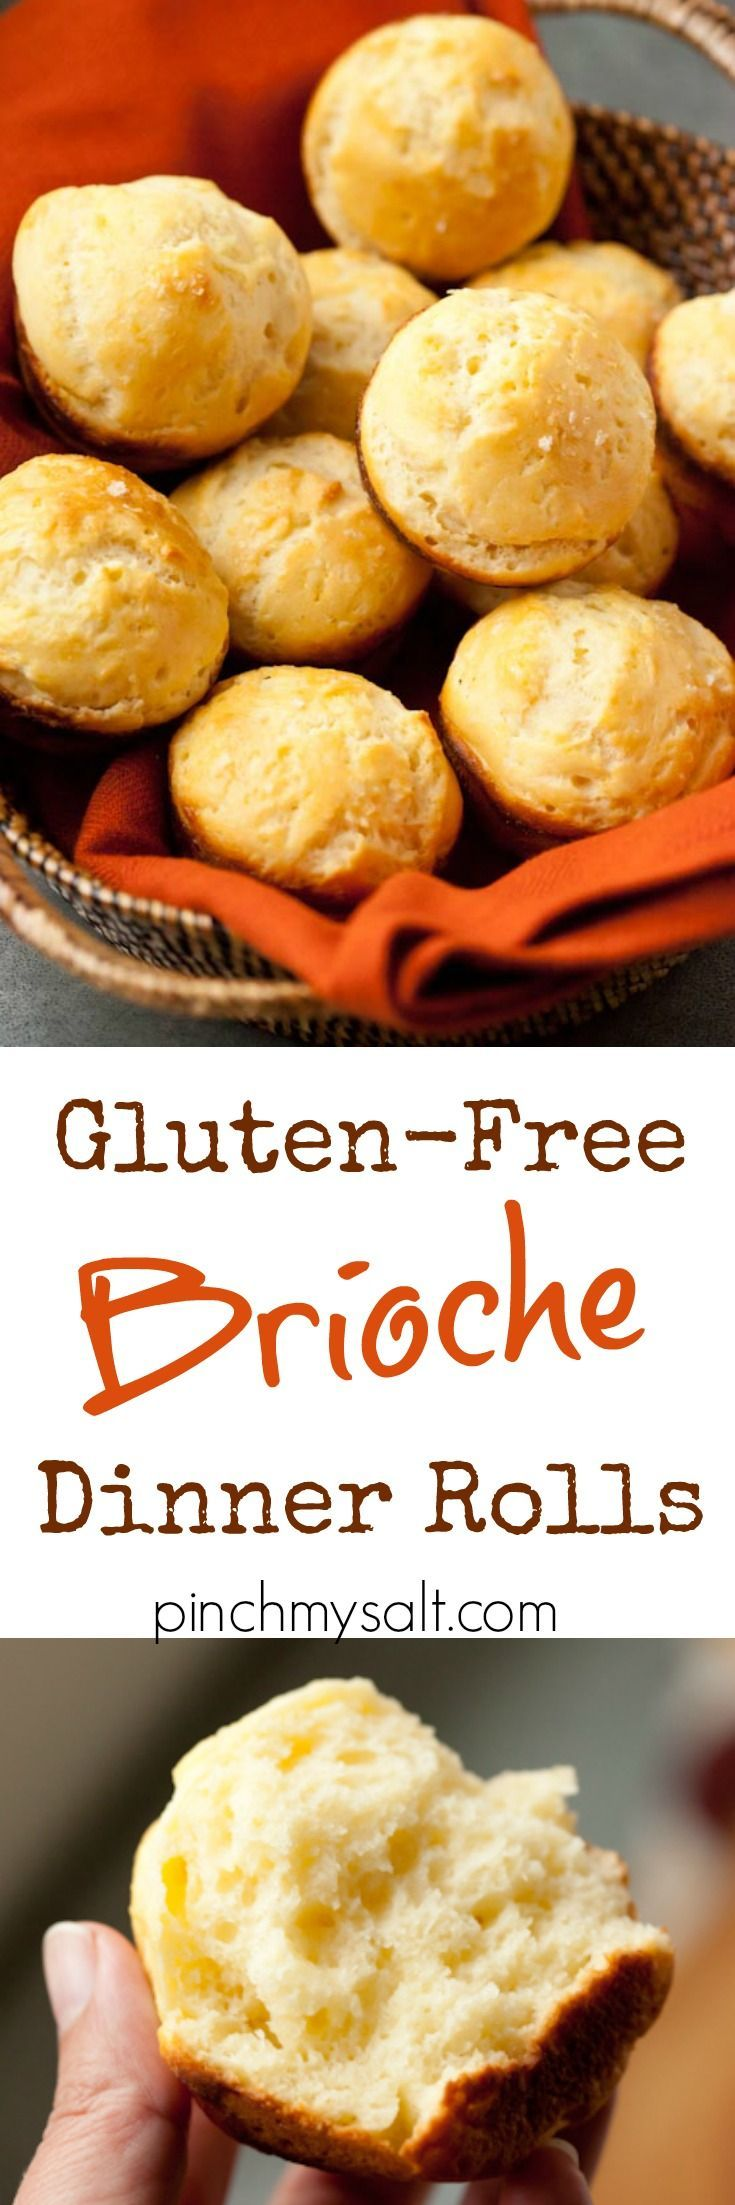 These gluten-free brioche dinner rolls are absolutely perfect for your next special occasion or holiday dinner. They would be a wonderful accompaniment to your Thanksgiving meal and can also be cut up to make a fabulous gluten-free stuffing or dressing.   pinchmysalt.com